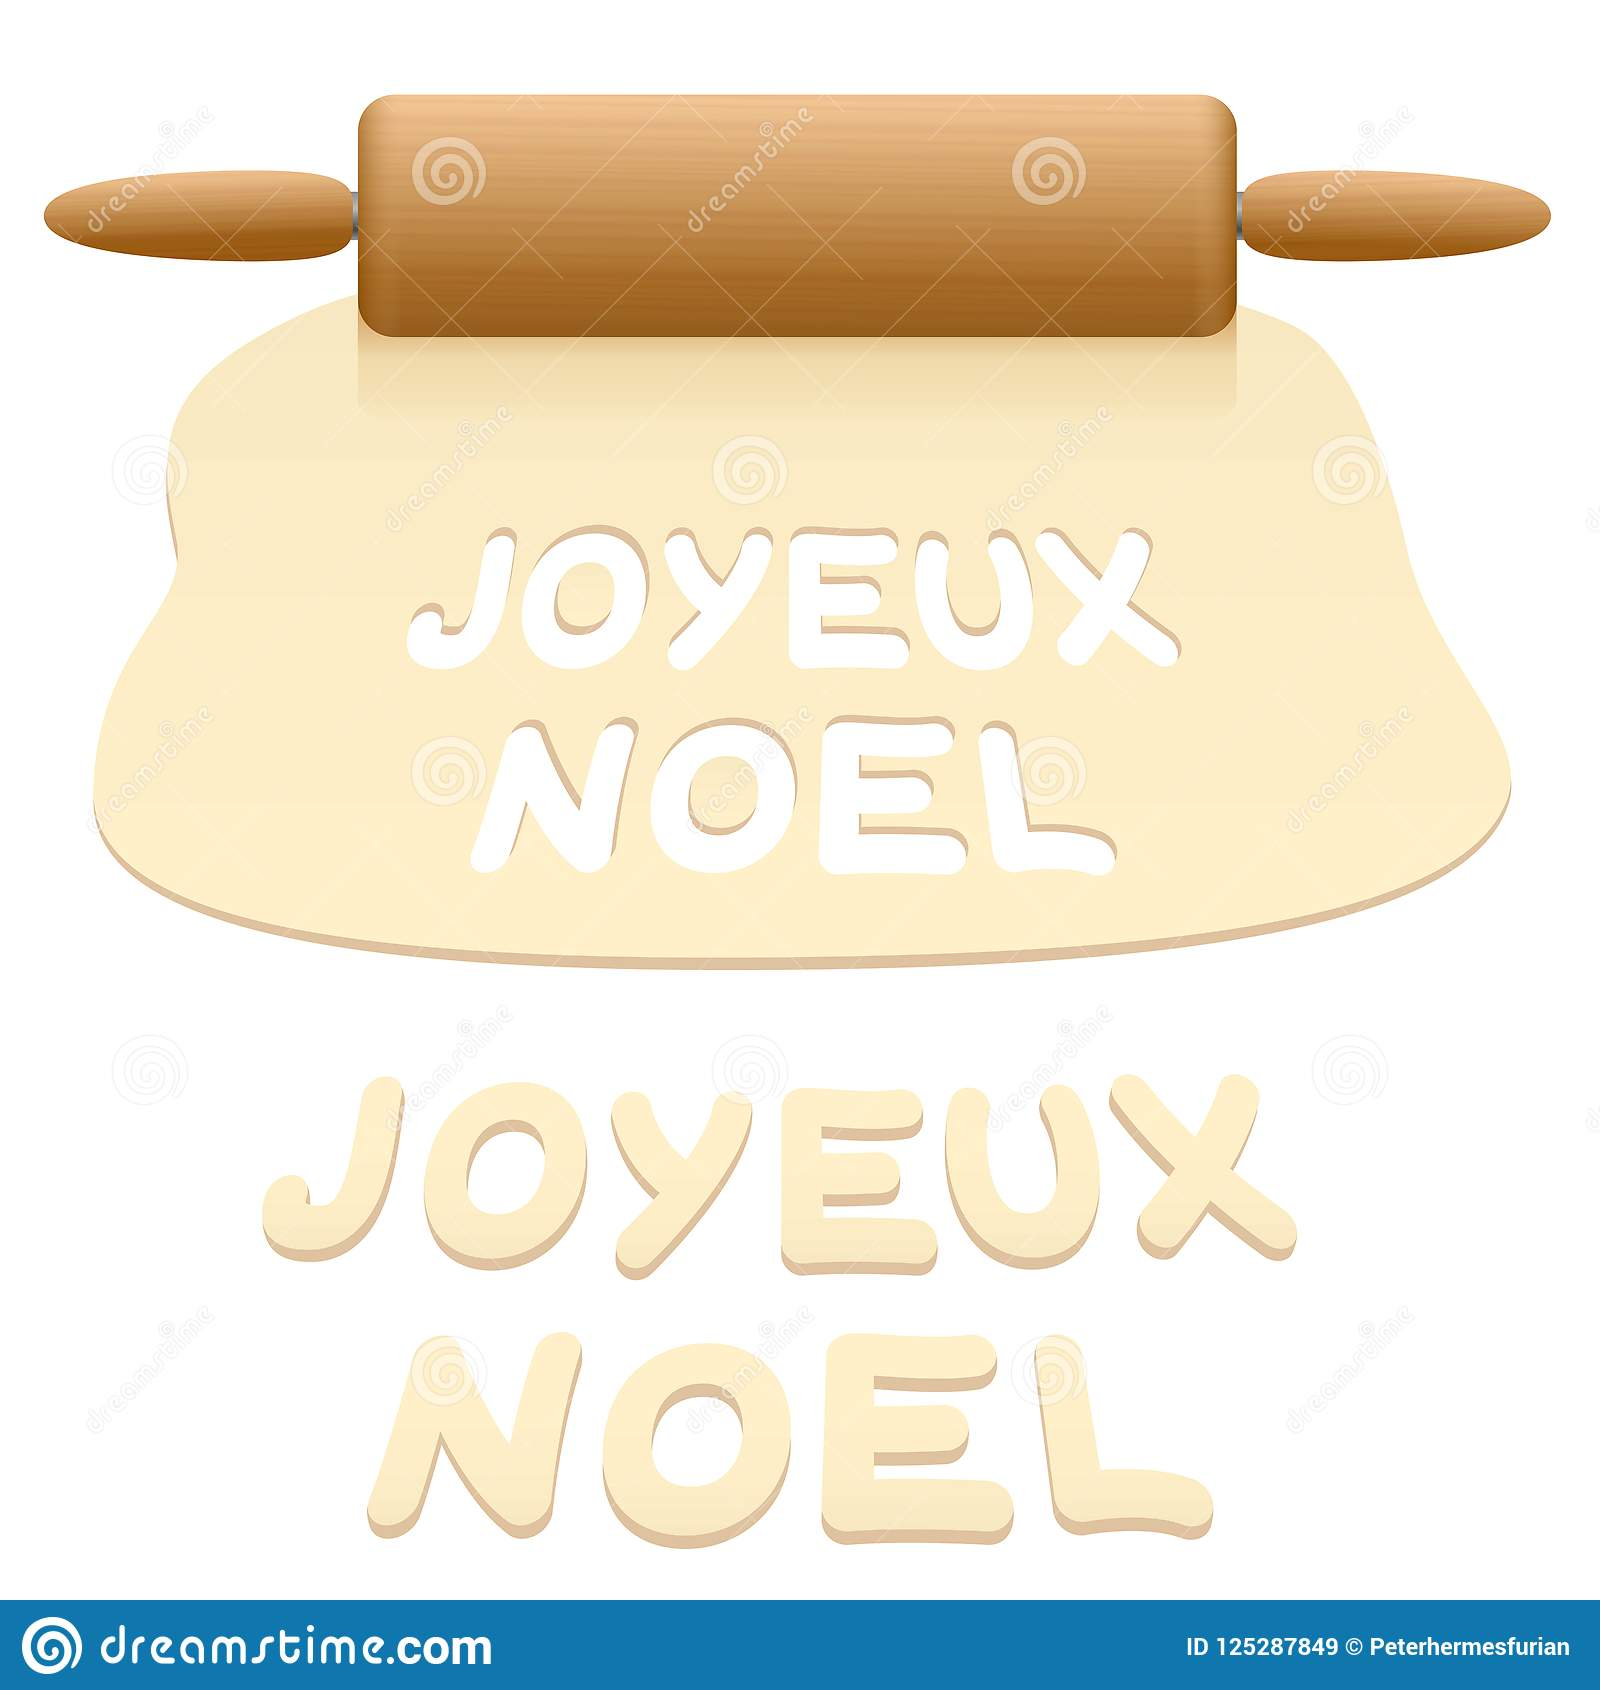 download merry christmas cookies french text stock vector illustration of holiday noel 125287849 - How To Say Merry Christmas In French